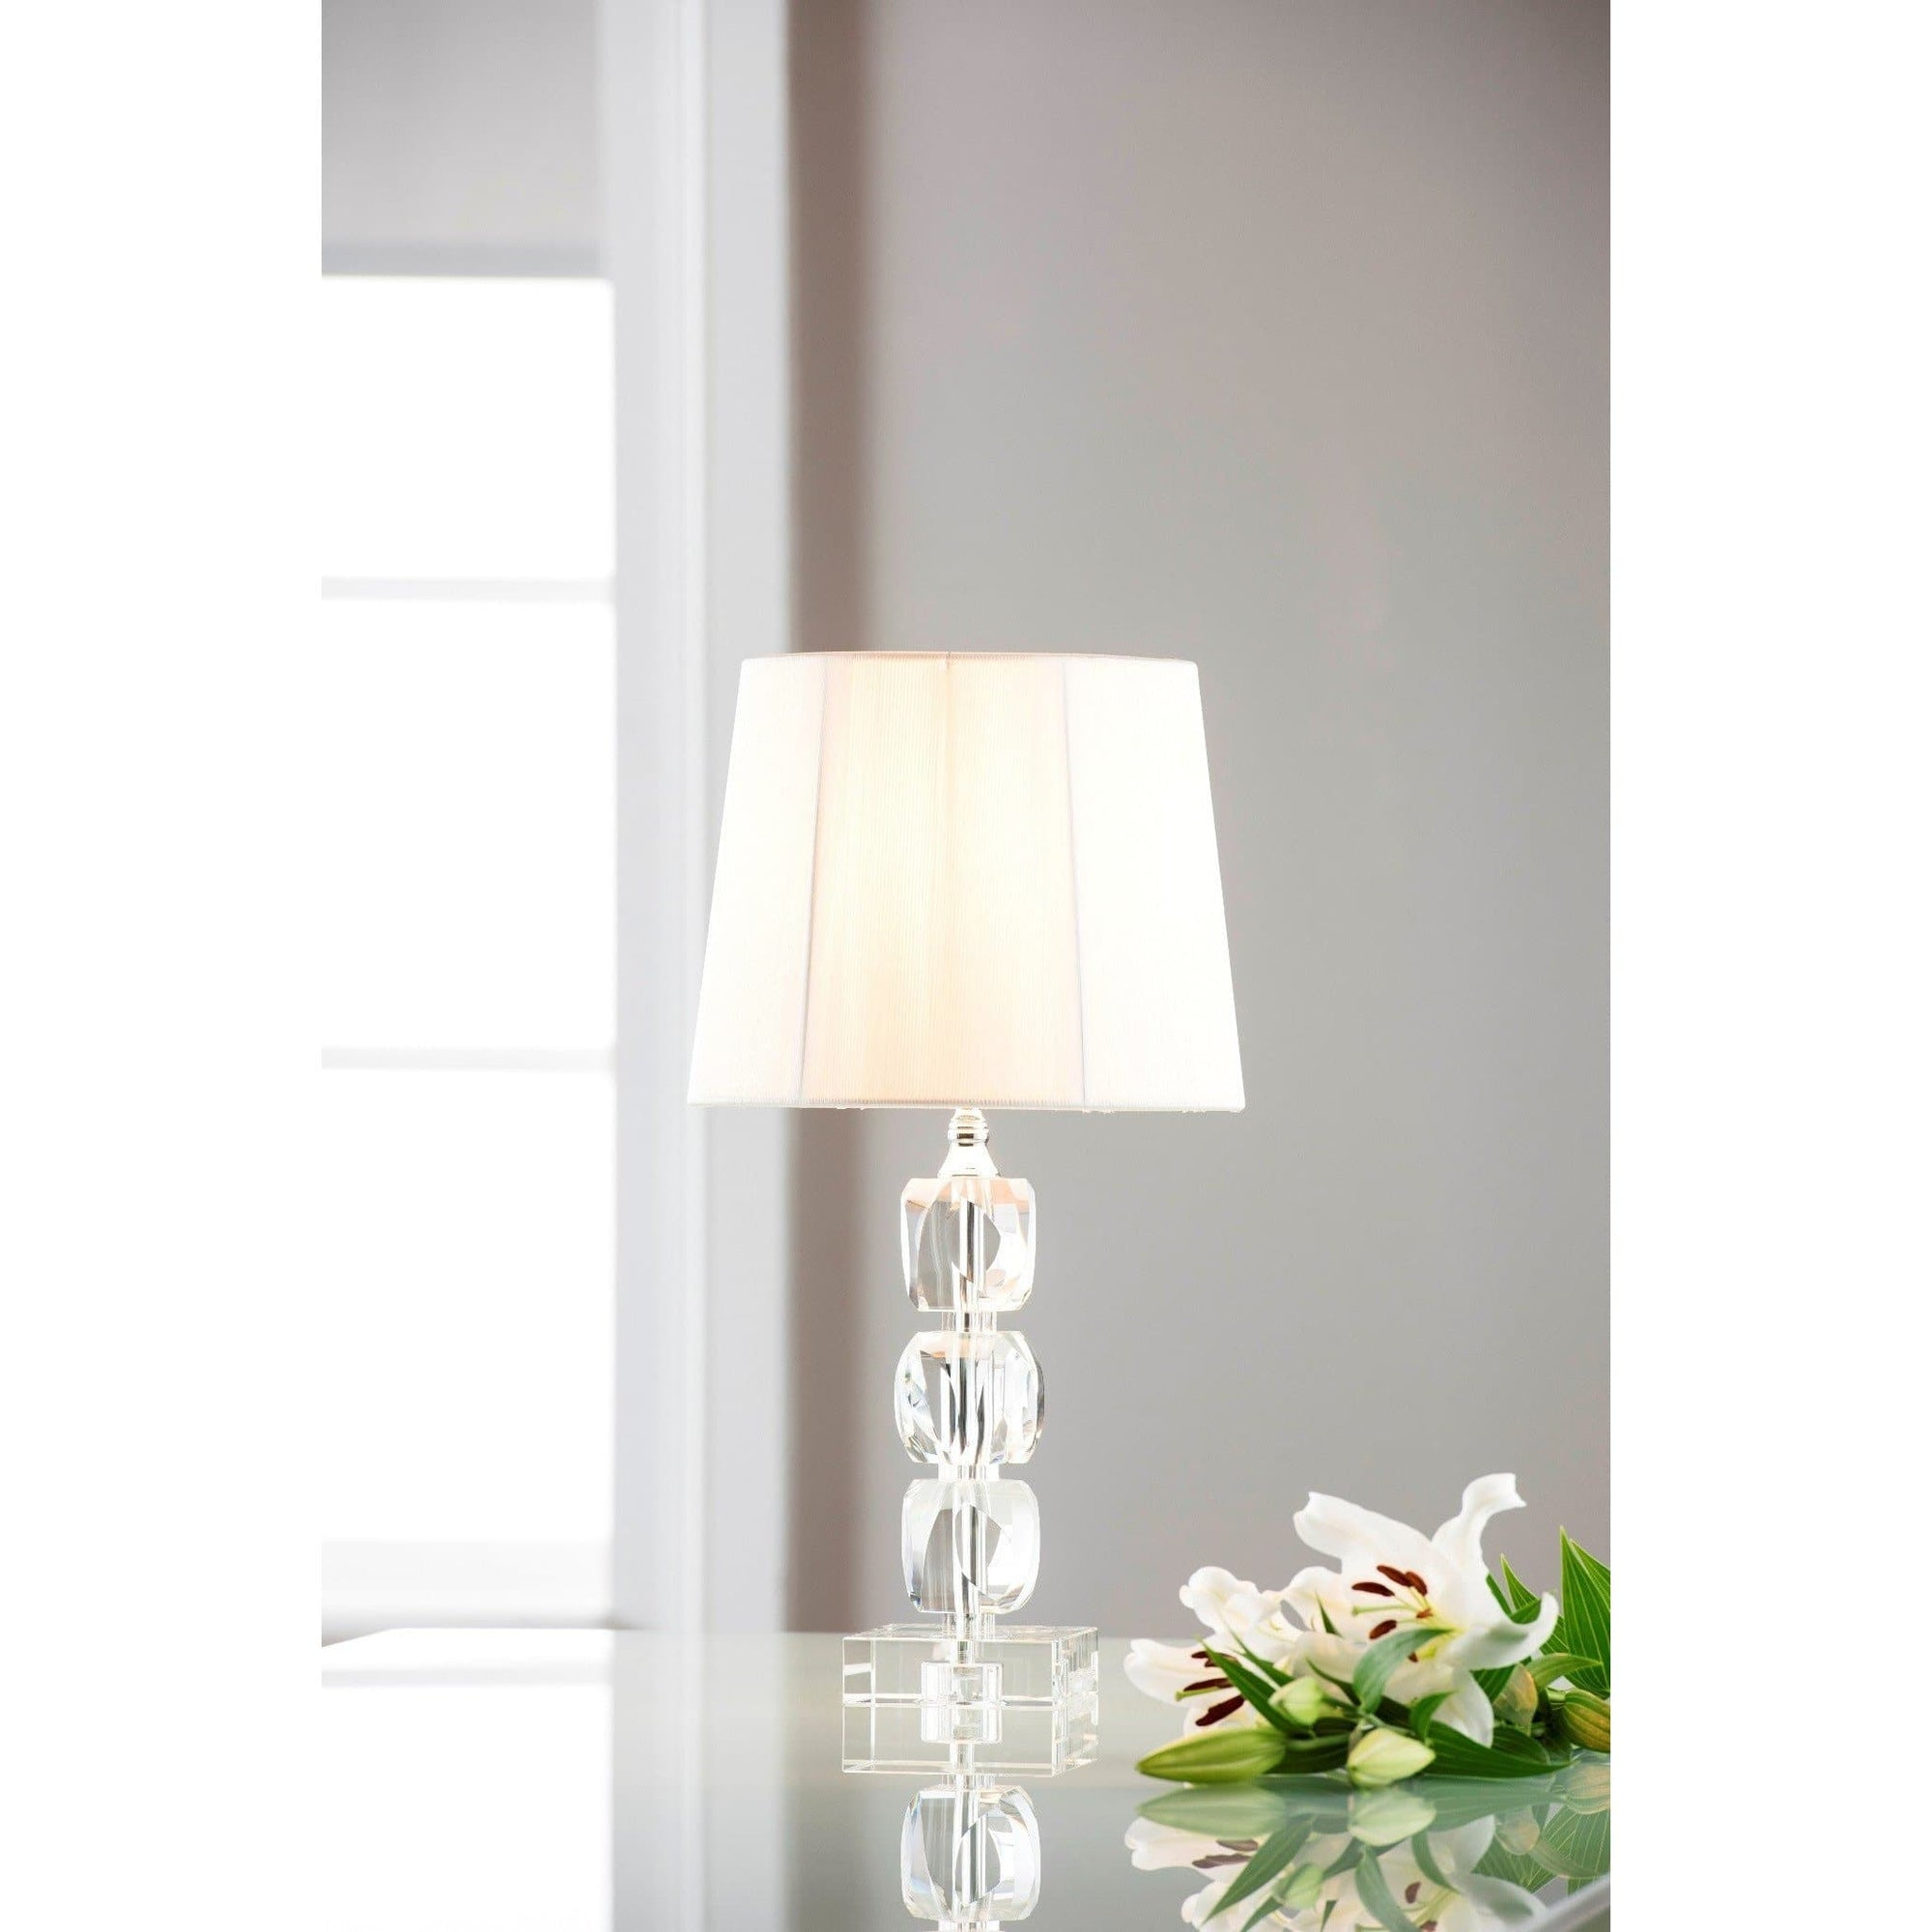 Engraved Facet Small Lamp & Shade (IRL/UK Fittings) (FC61E)